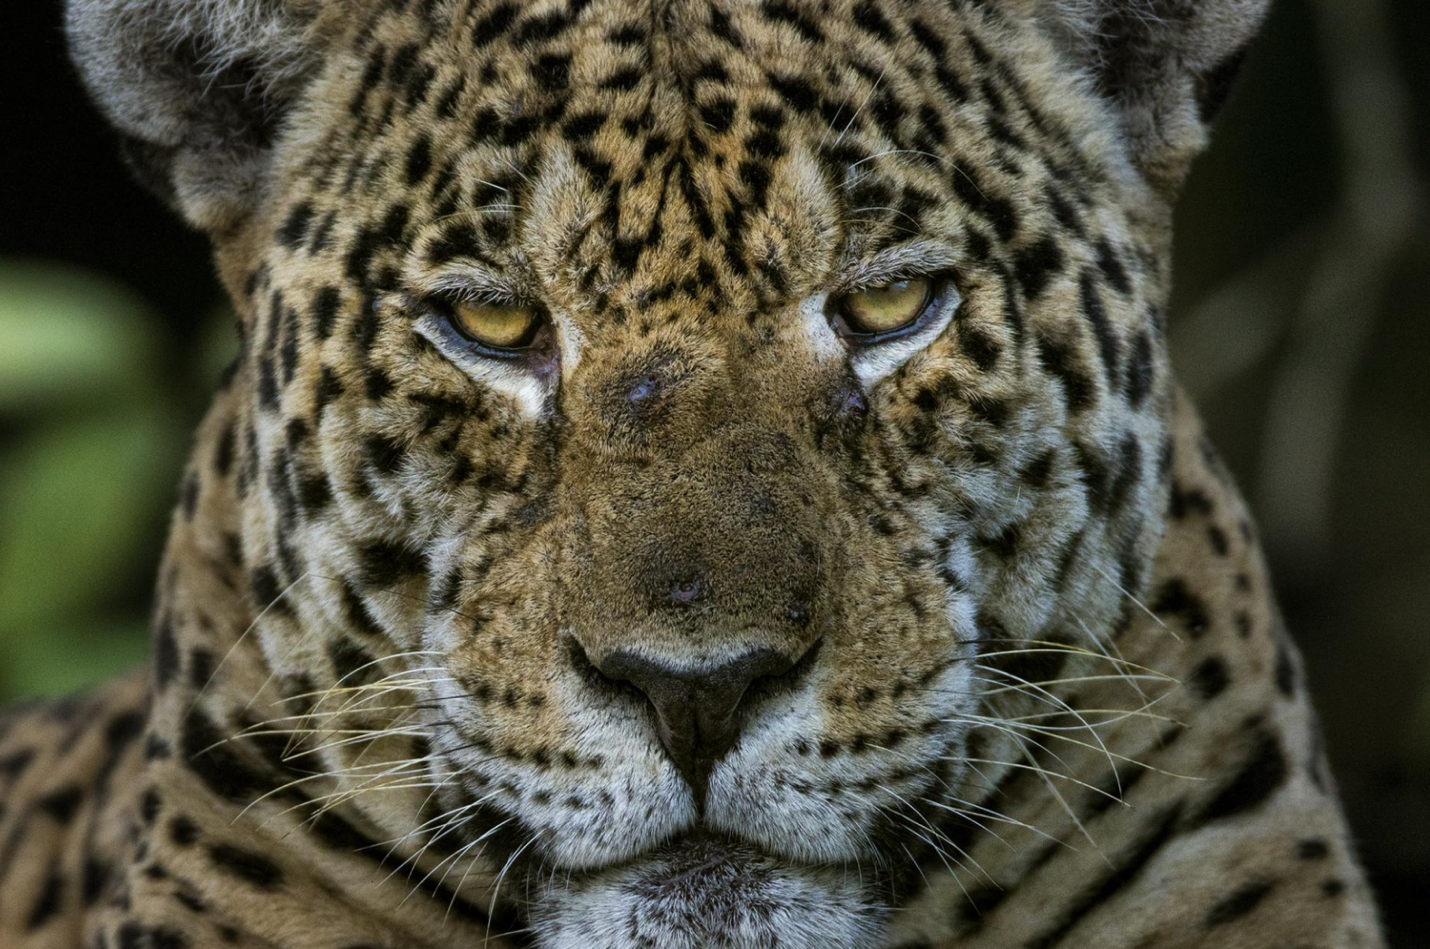 Jaguar - Photo: Charlie Hamilton James/National Geographic